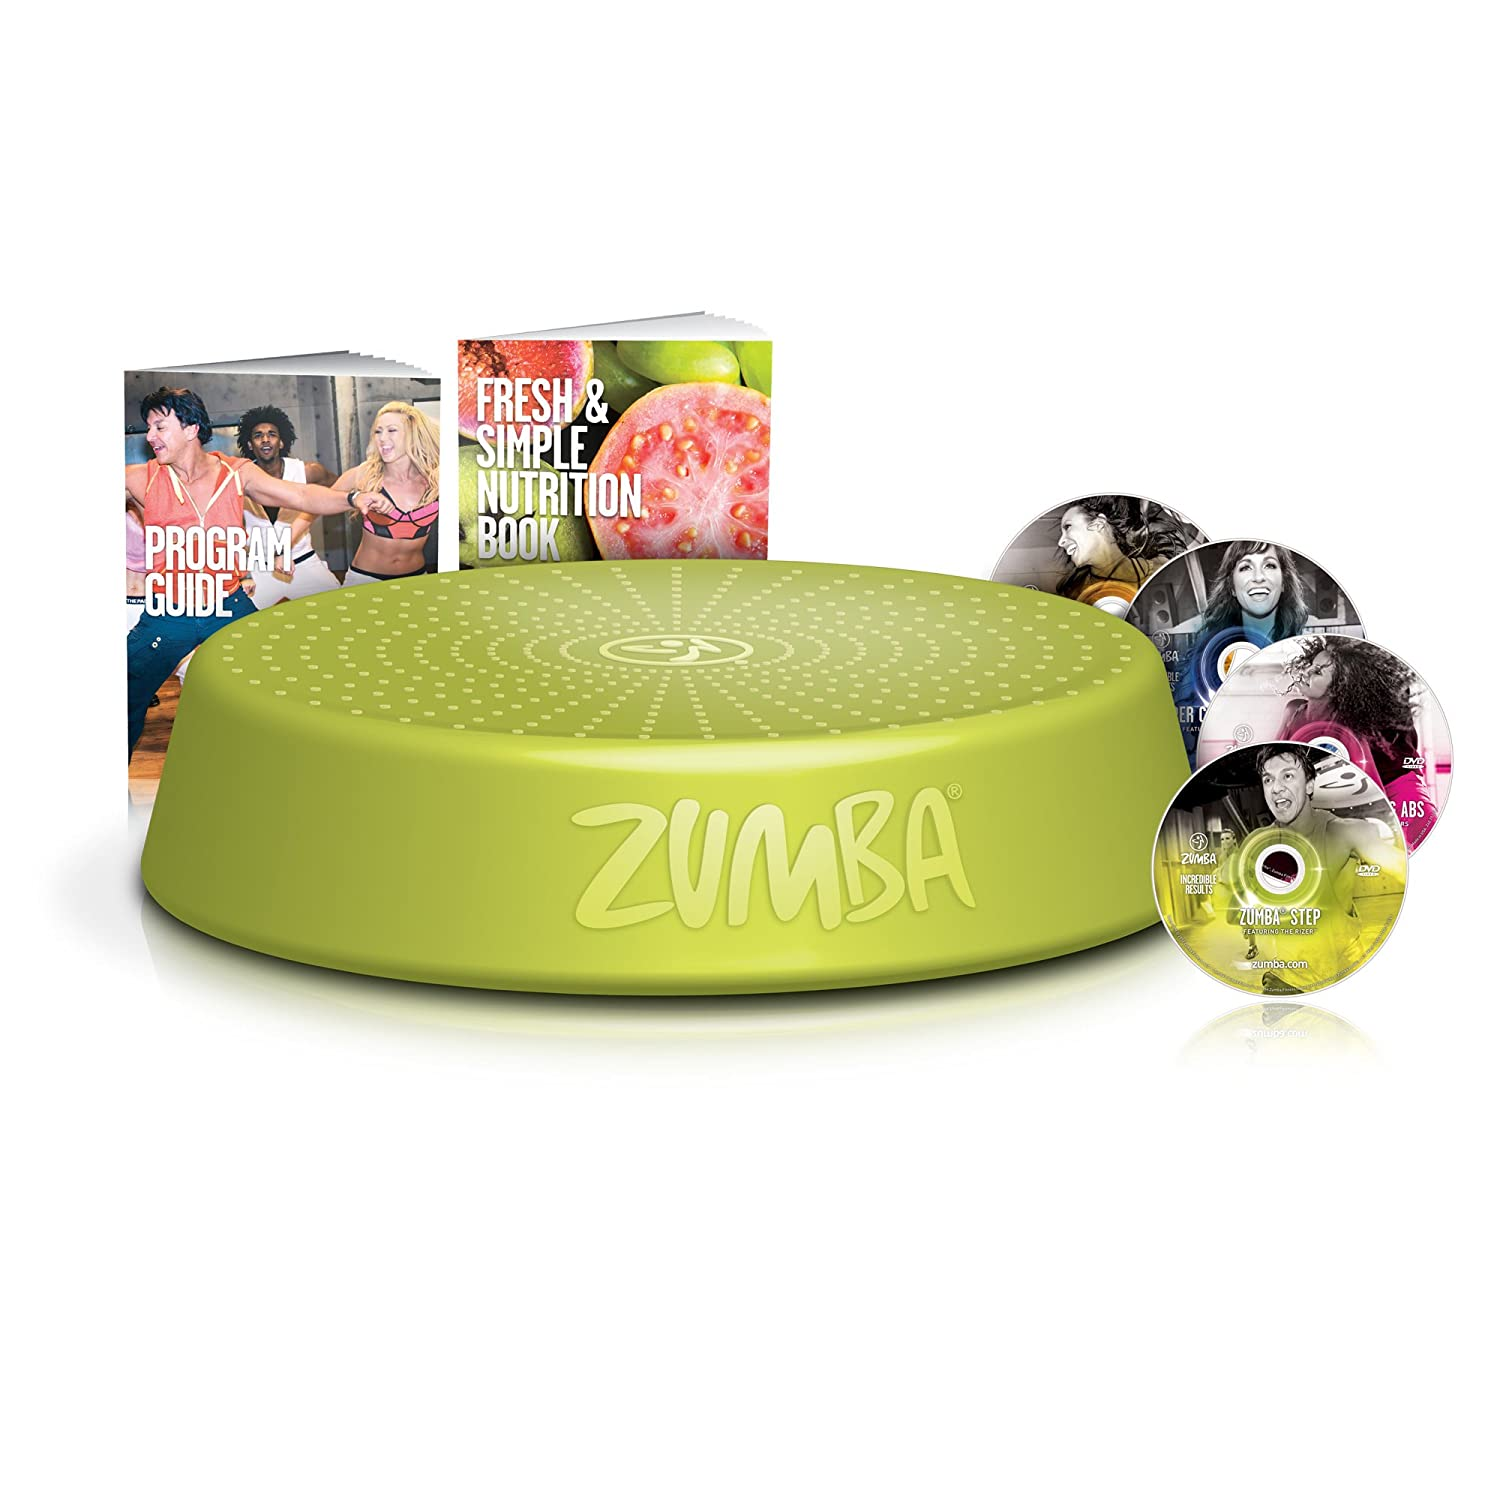 Zumba Fitness Incredible Results